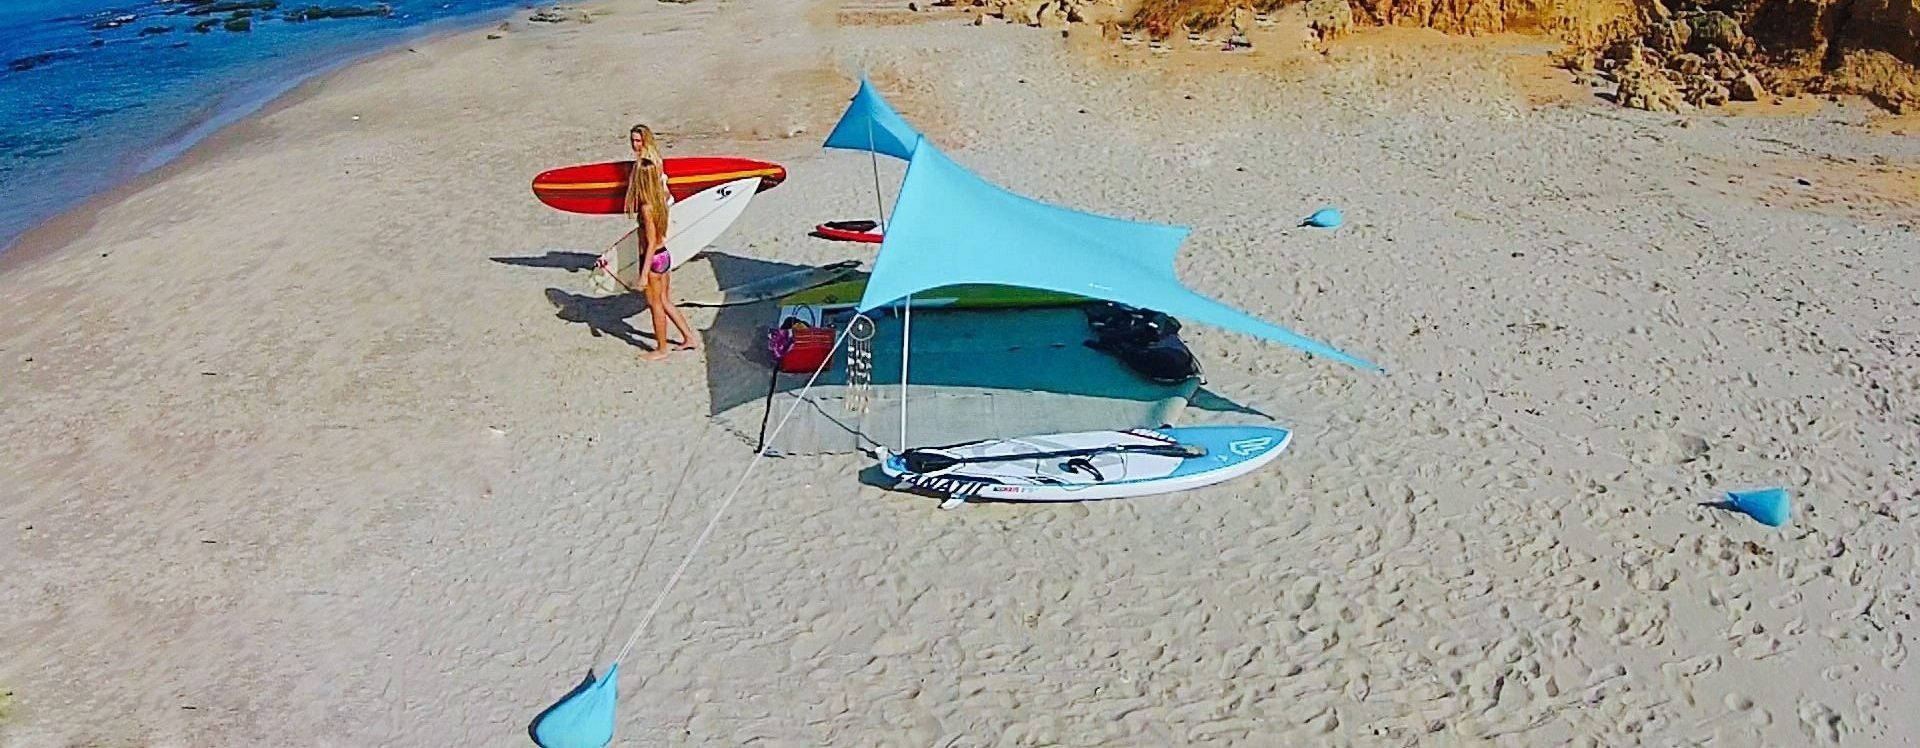 beach sunshade tent shelter